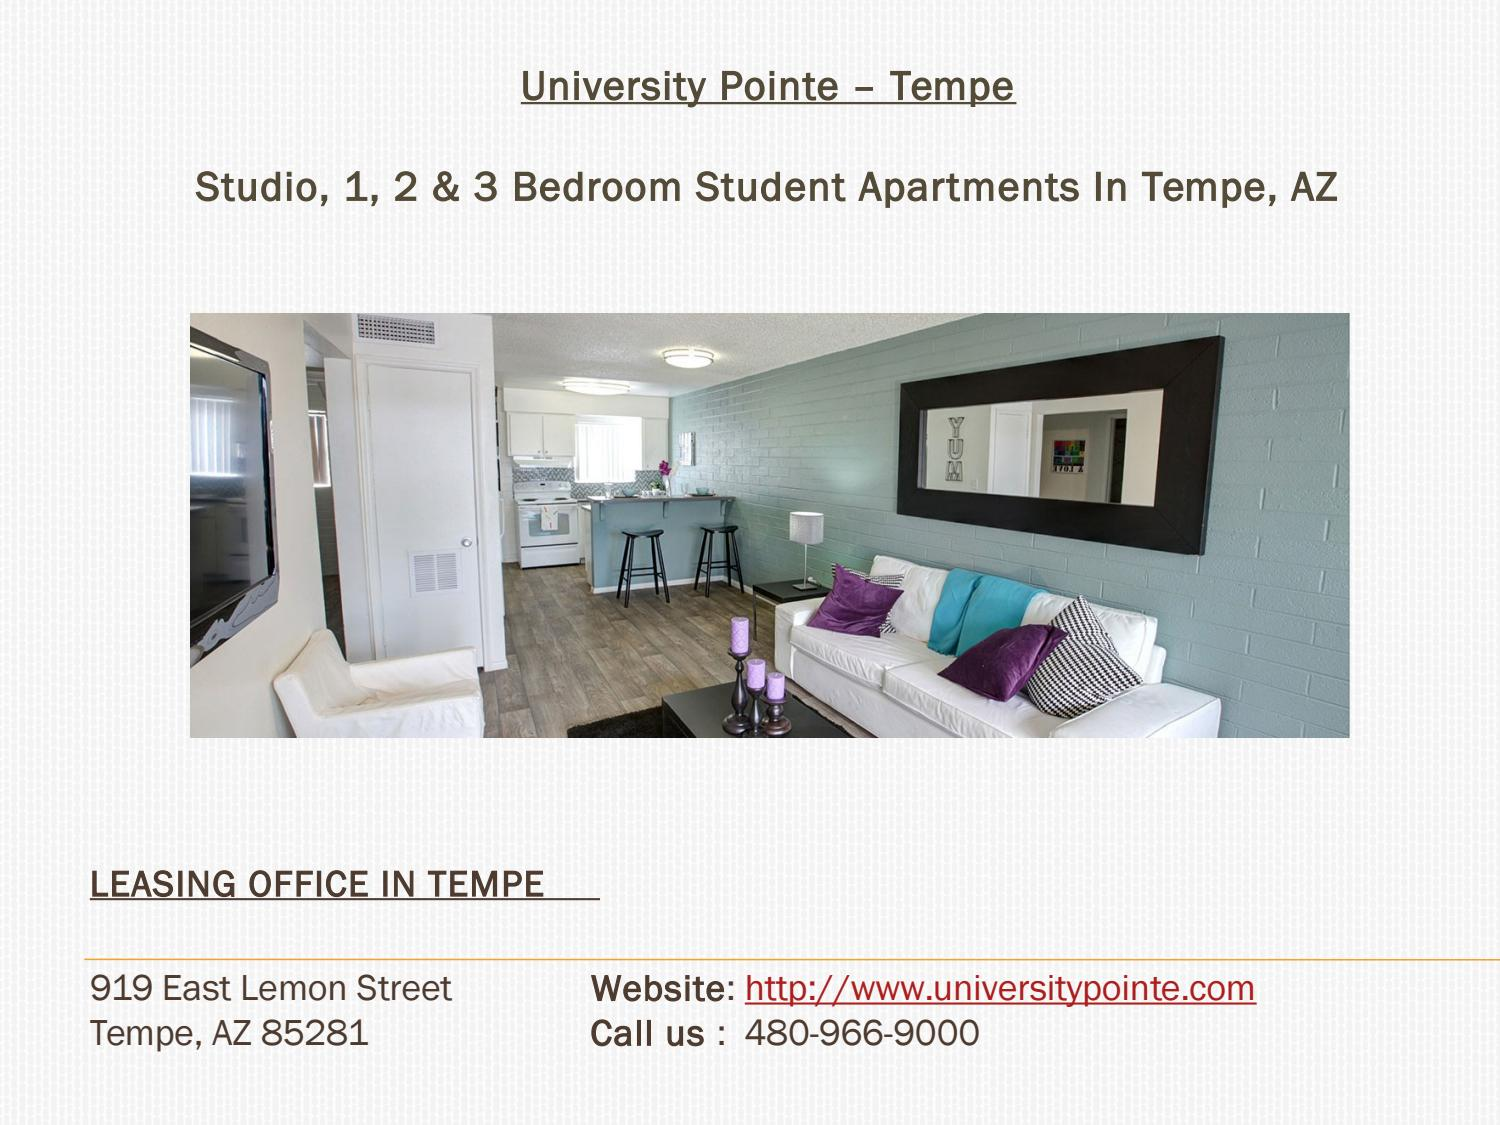 university pointe apartments in tempe az near asu by university pointe issuu. Black Bedroom Furniture Sets. Home Design Ideas